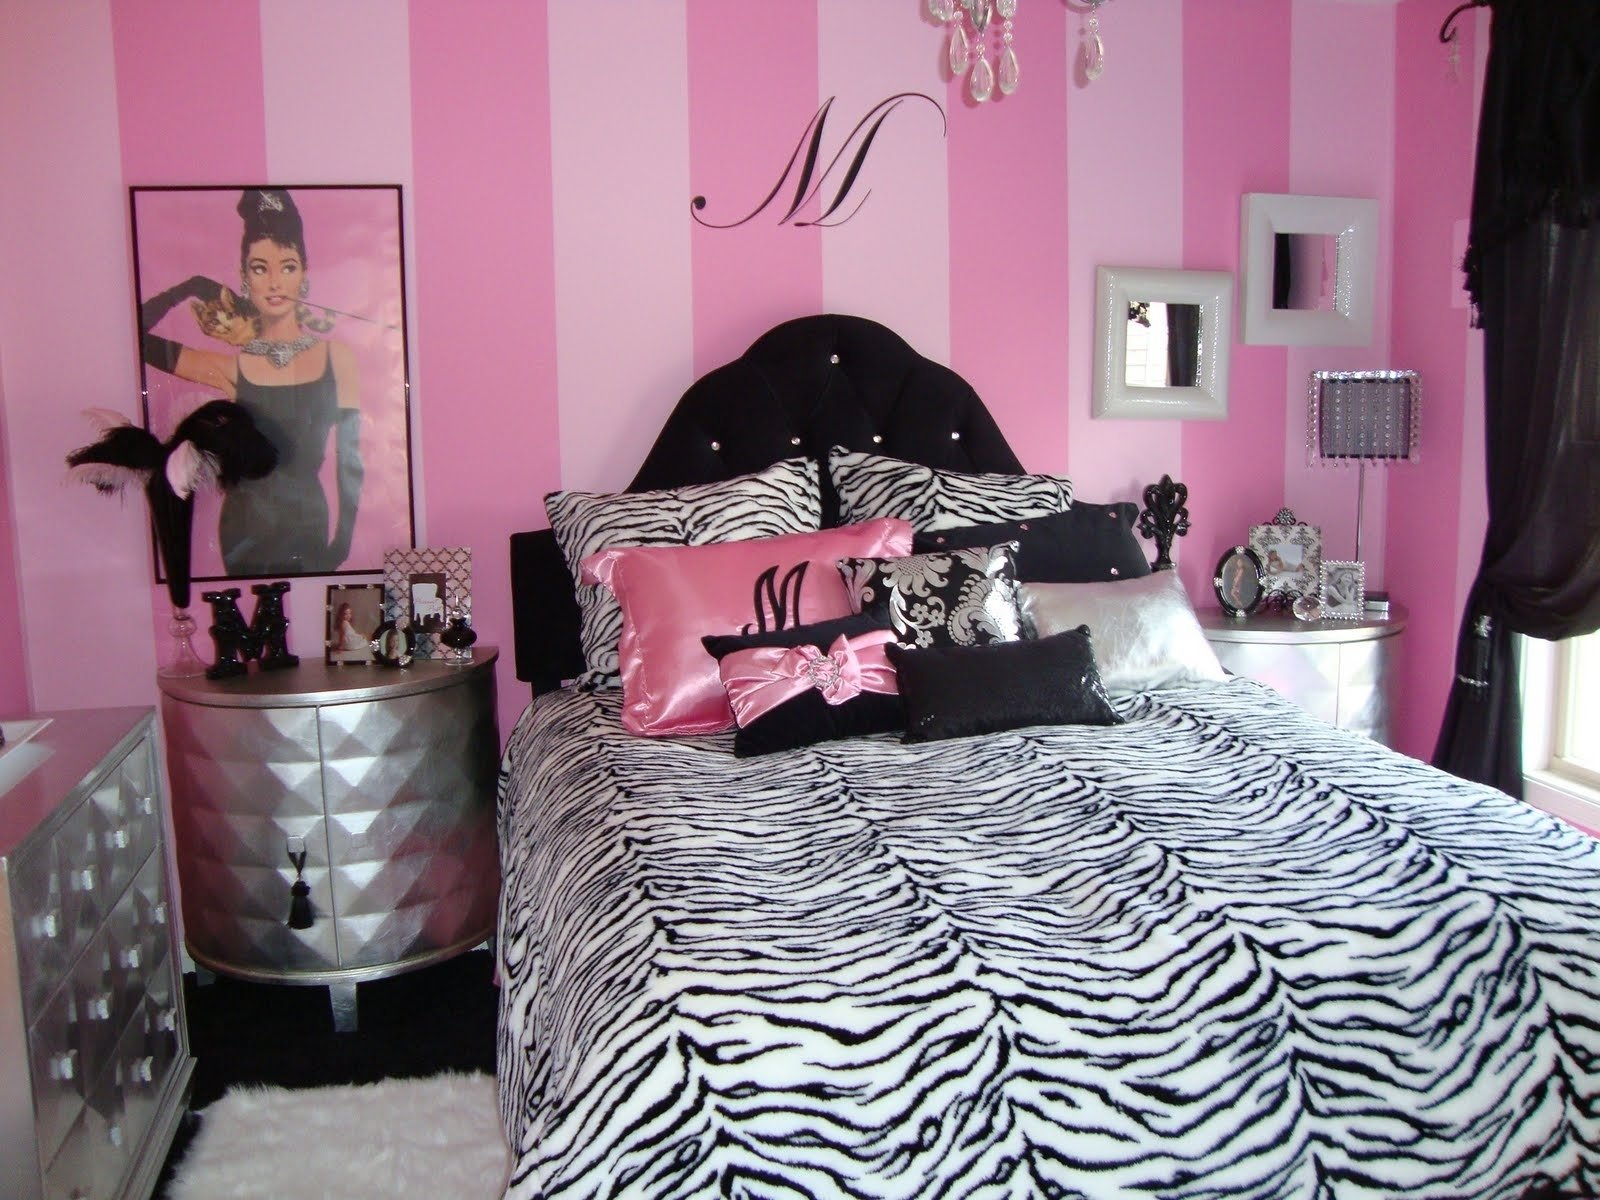 10 Lovable Pink And Black Bedroom Ideas pink black bedroom ideas e280a2 white bedroom ideas 2020